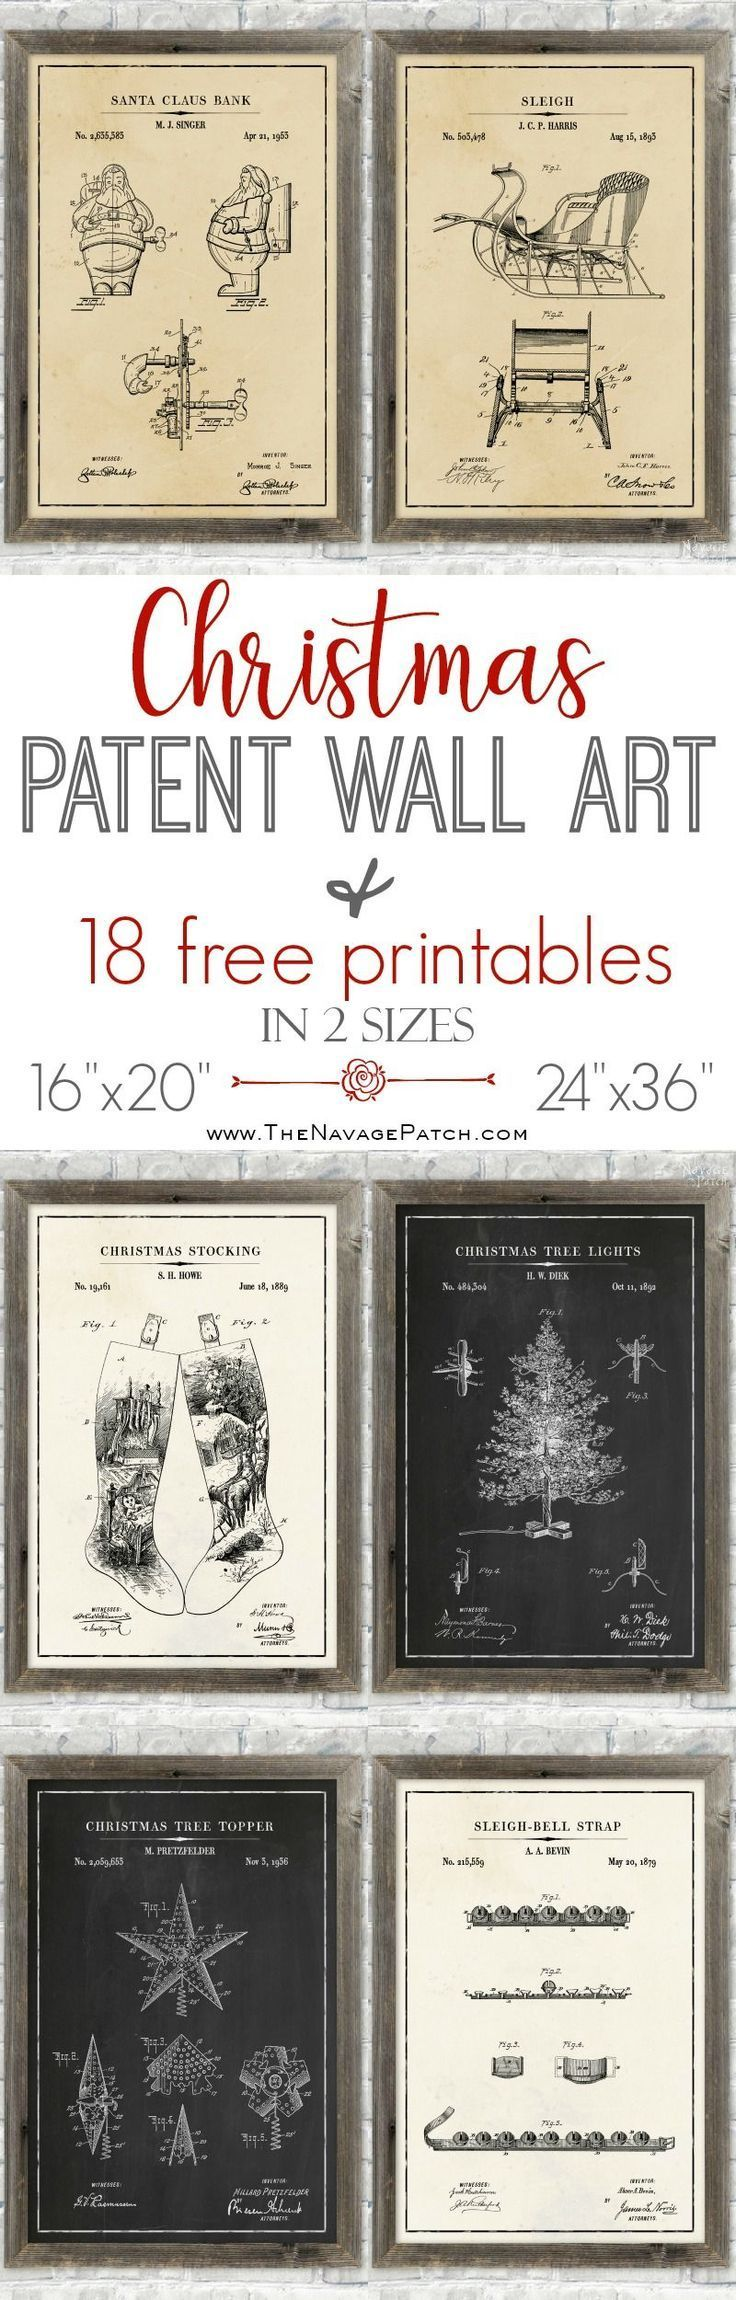 Christmas Patent Wall Art (and 18 free printables)   #FreePrintable #Christmas #Patent #WallArt   Easy and Budget Friendly Holiday Decoration  Beautiful DIY Christmas Gifts   #ChristmasFreePrintable   DIY Farmhouse Home Decor   DIY Industrial Style Home Decor   Santa and Sleigh Free Printables   TheNavagePatch.com